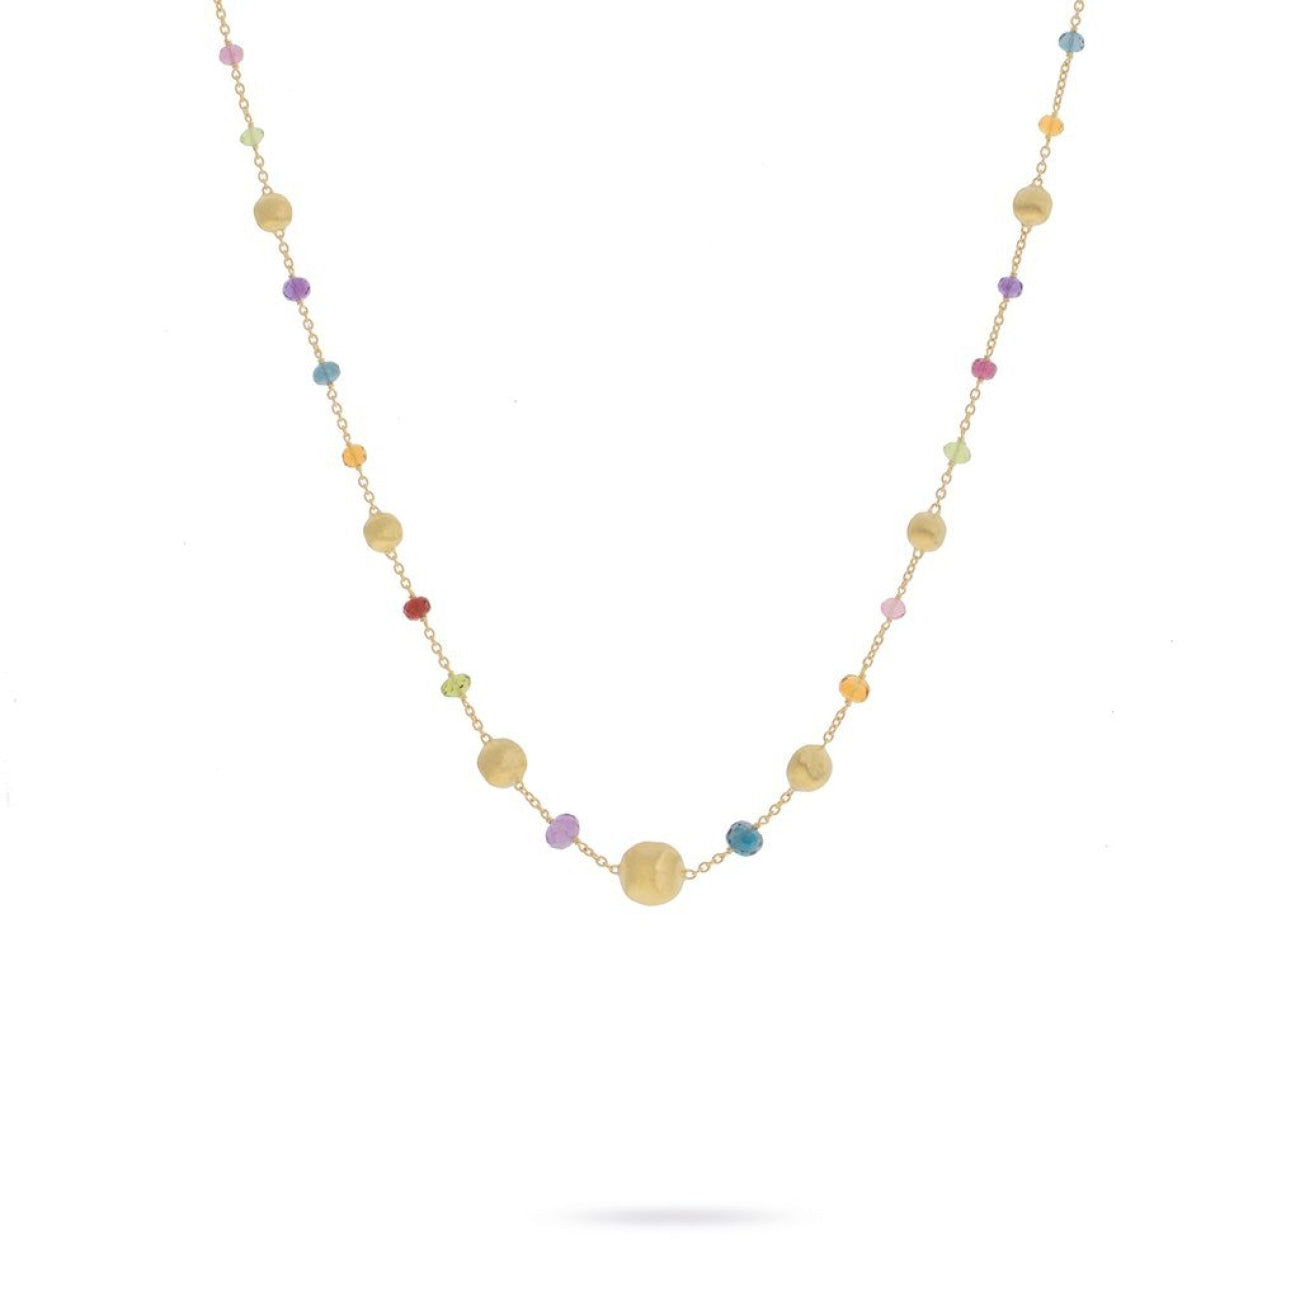 Marco Bicego Jewelry - 18K Yellow Gold and Multi-Colored Gemstone Necklace | Manfredi Jewels